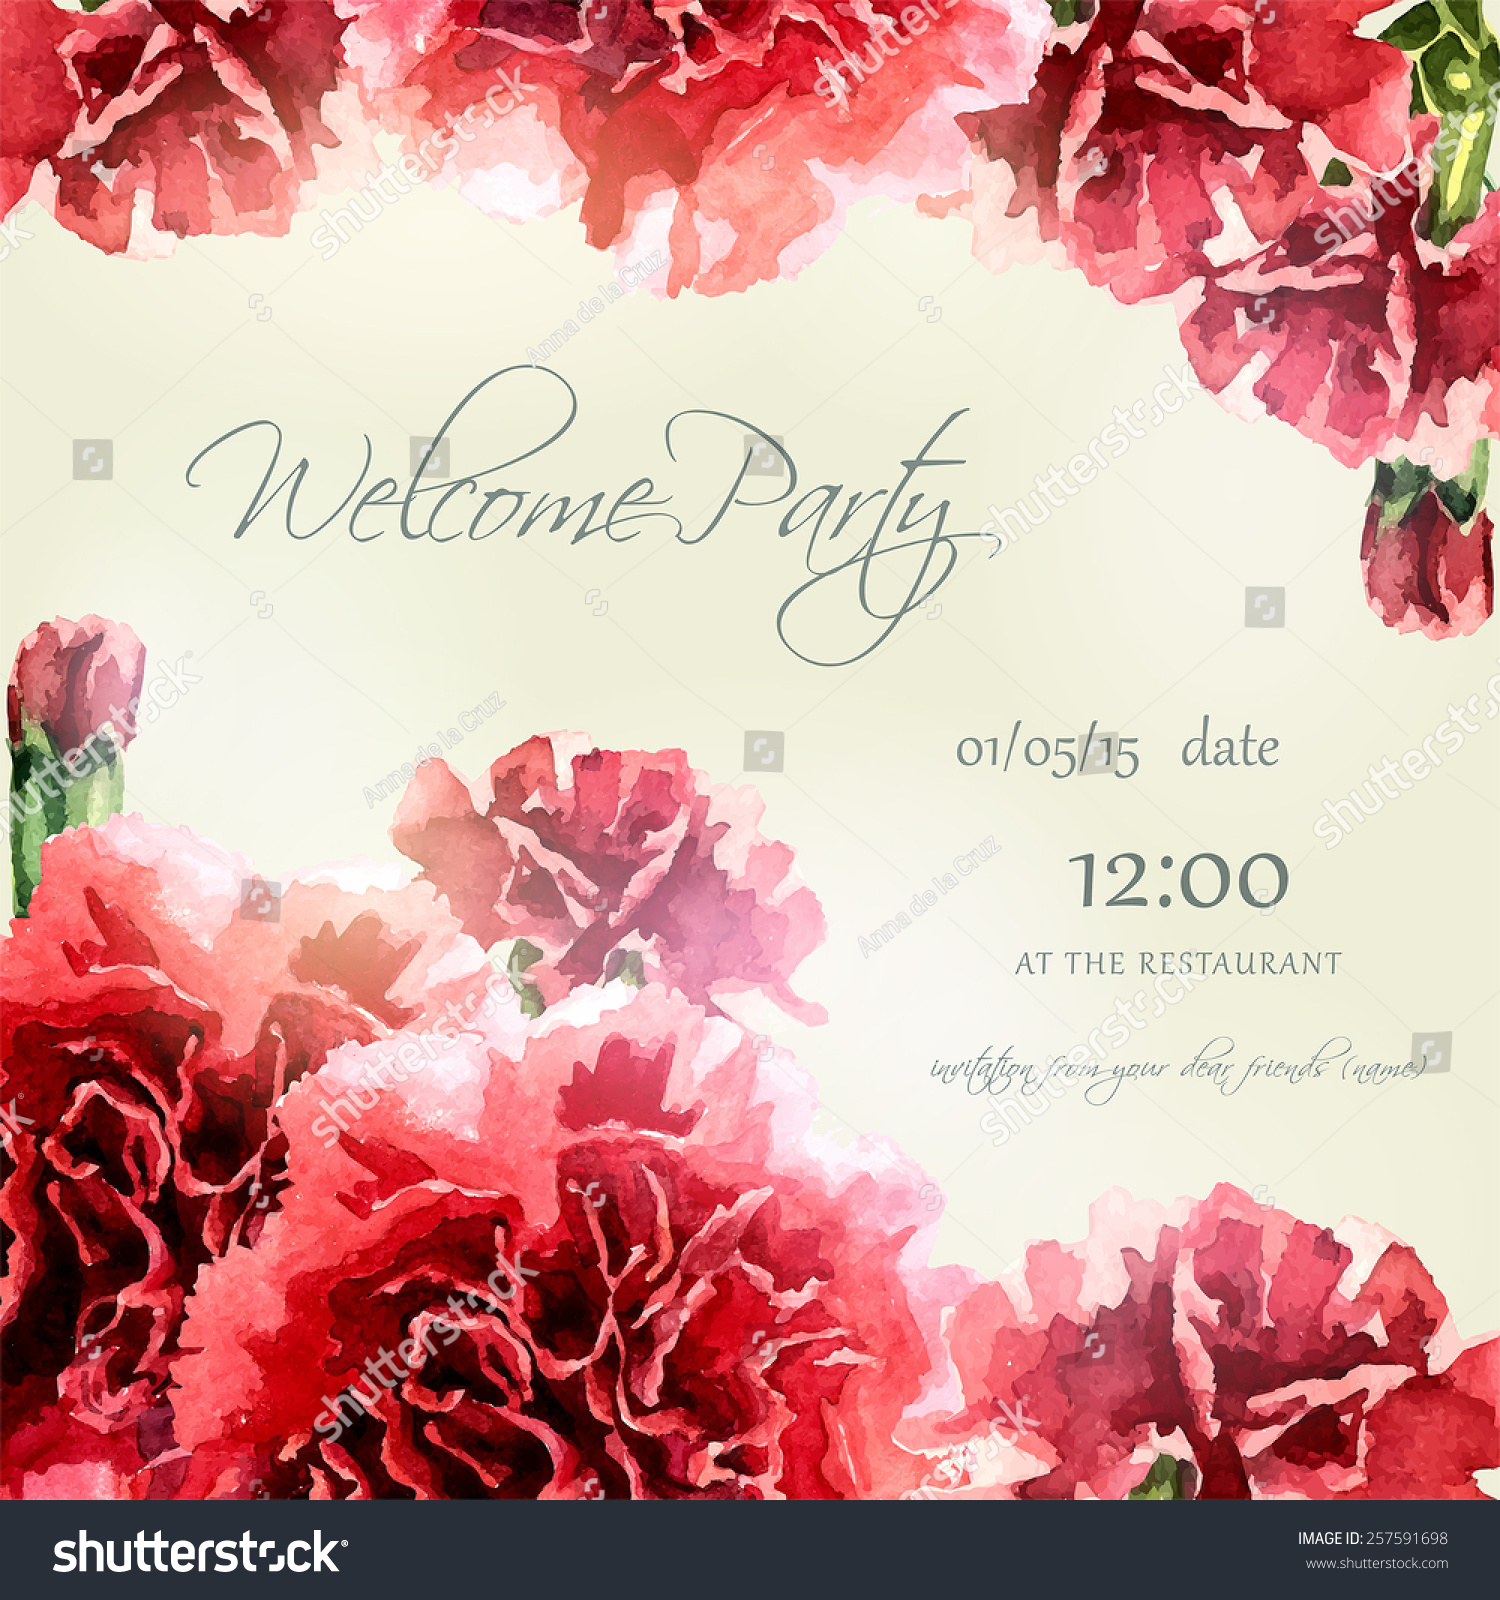 Invitation Card Watercolor Carnation Frame Wedding Stock Vector ...